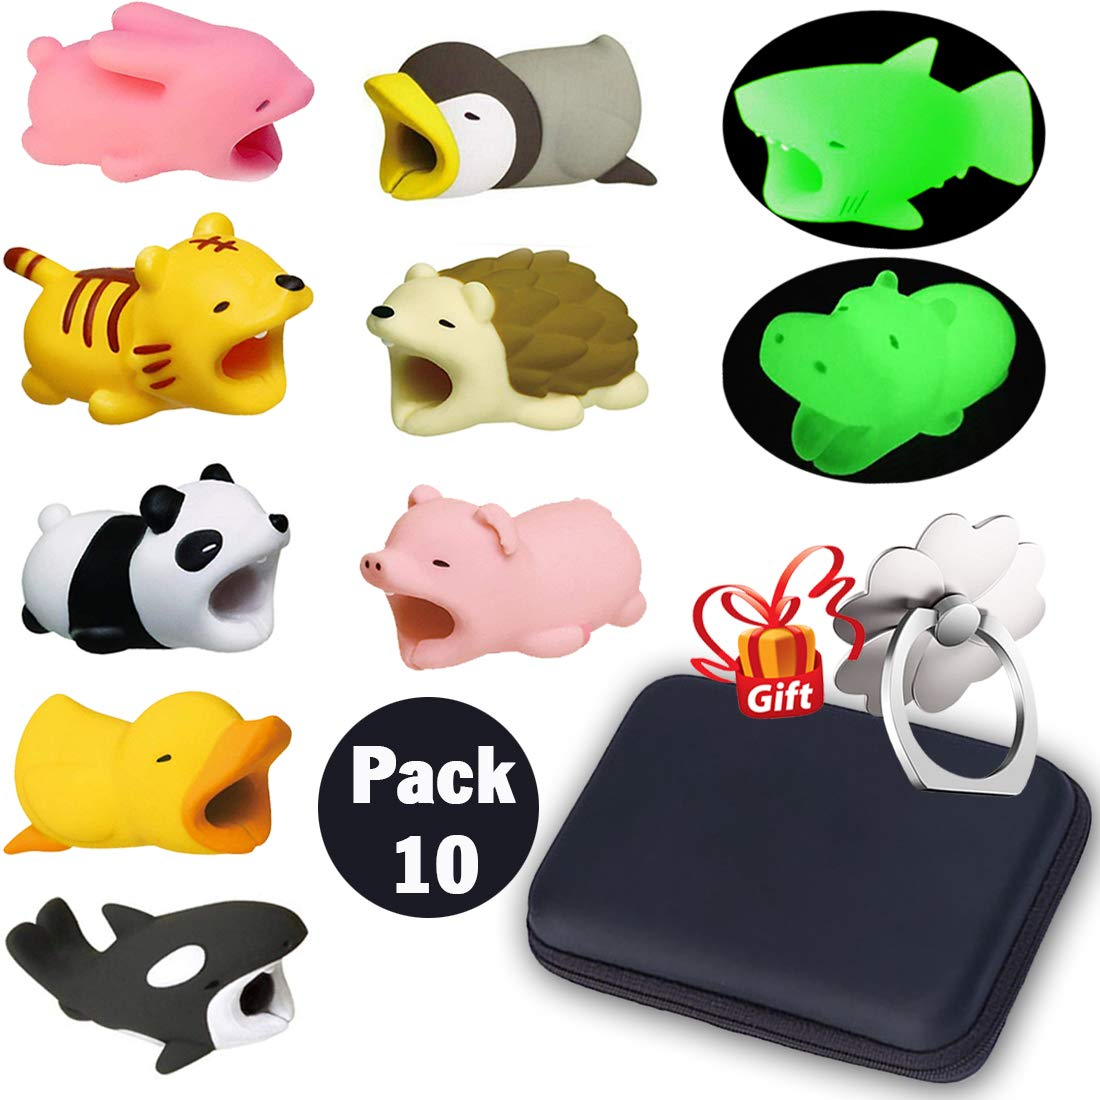 Animal Buddies Phone Cord Bites, Cute Animals Bite Cable Protector for IPhone, Cell Phone Accessories & Bites Data Line (10 Pieces with 2 Glowing Style) Bonus: Mobile Storage Box & Cell Phone Holder ZONLEGEND